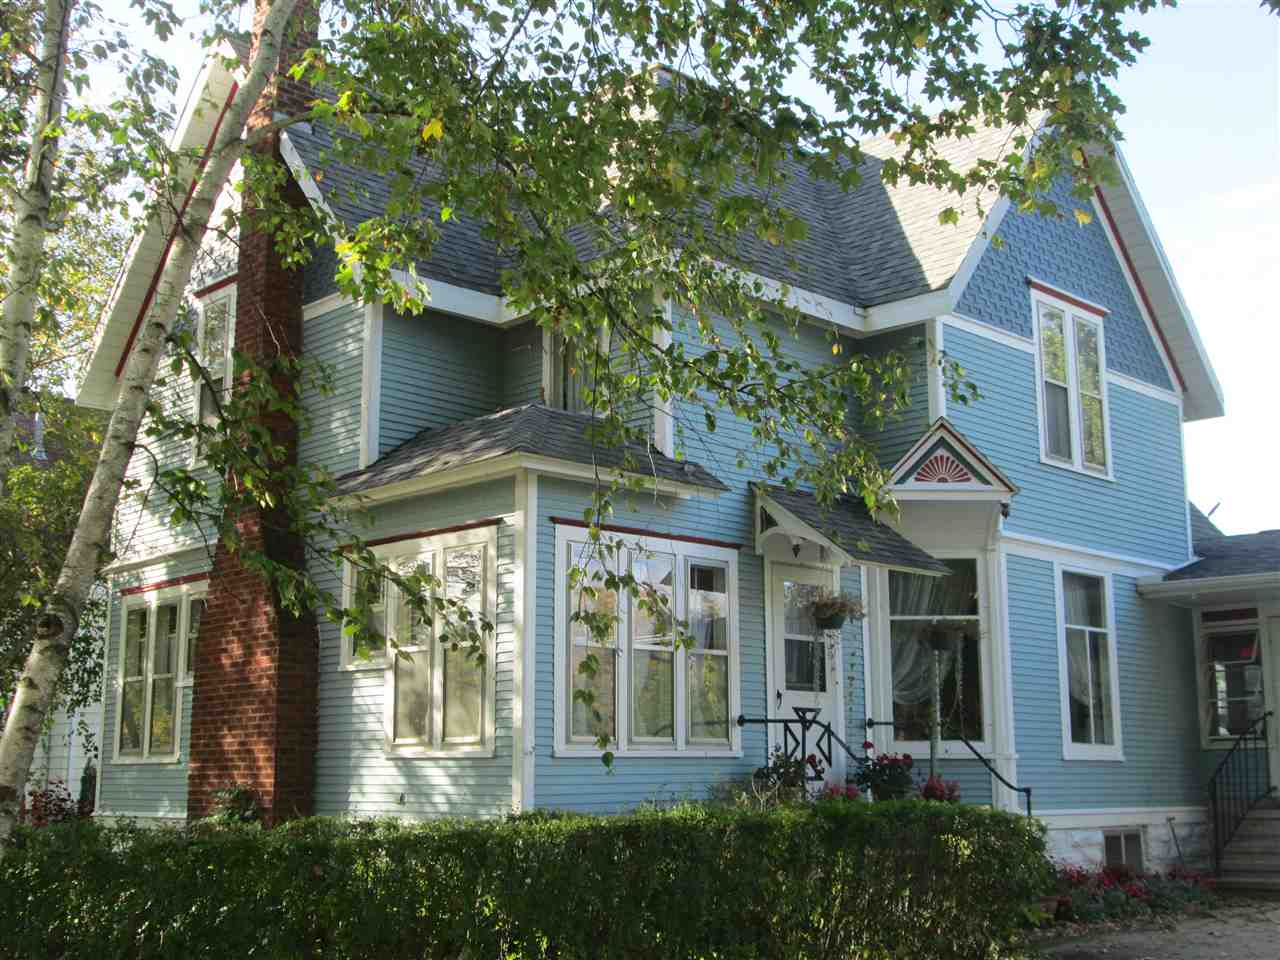 136 W LIBERTY ST, Evansville, WI 53536